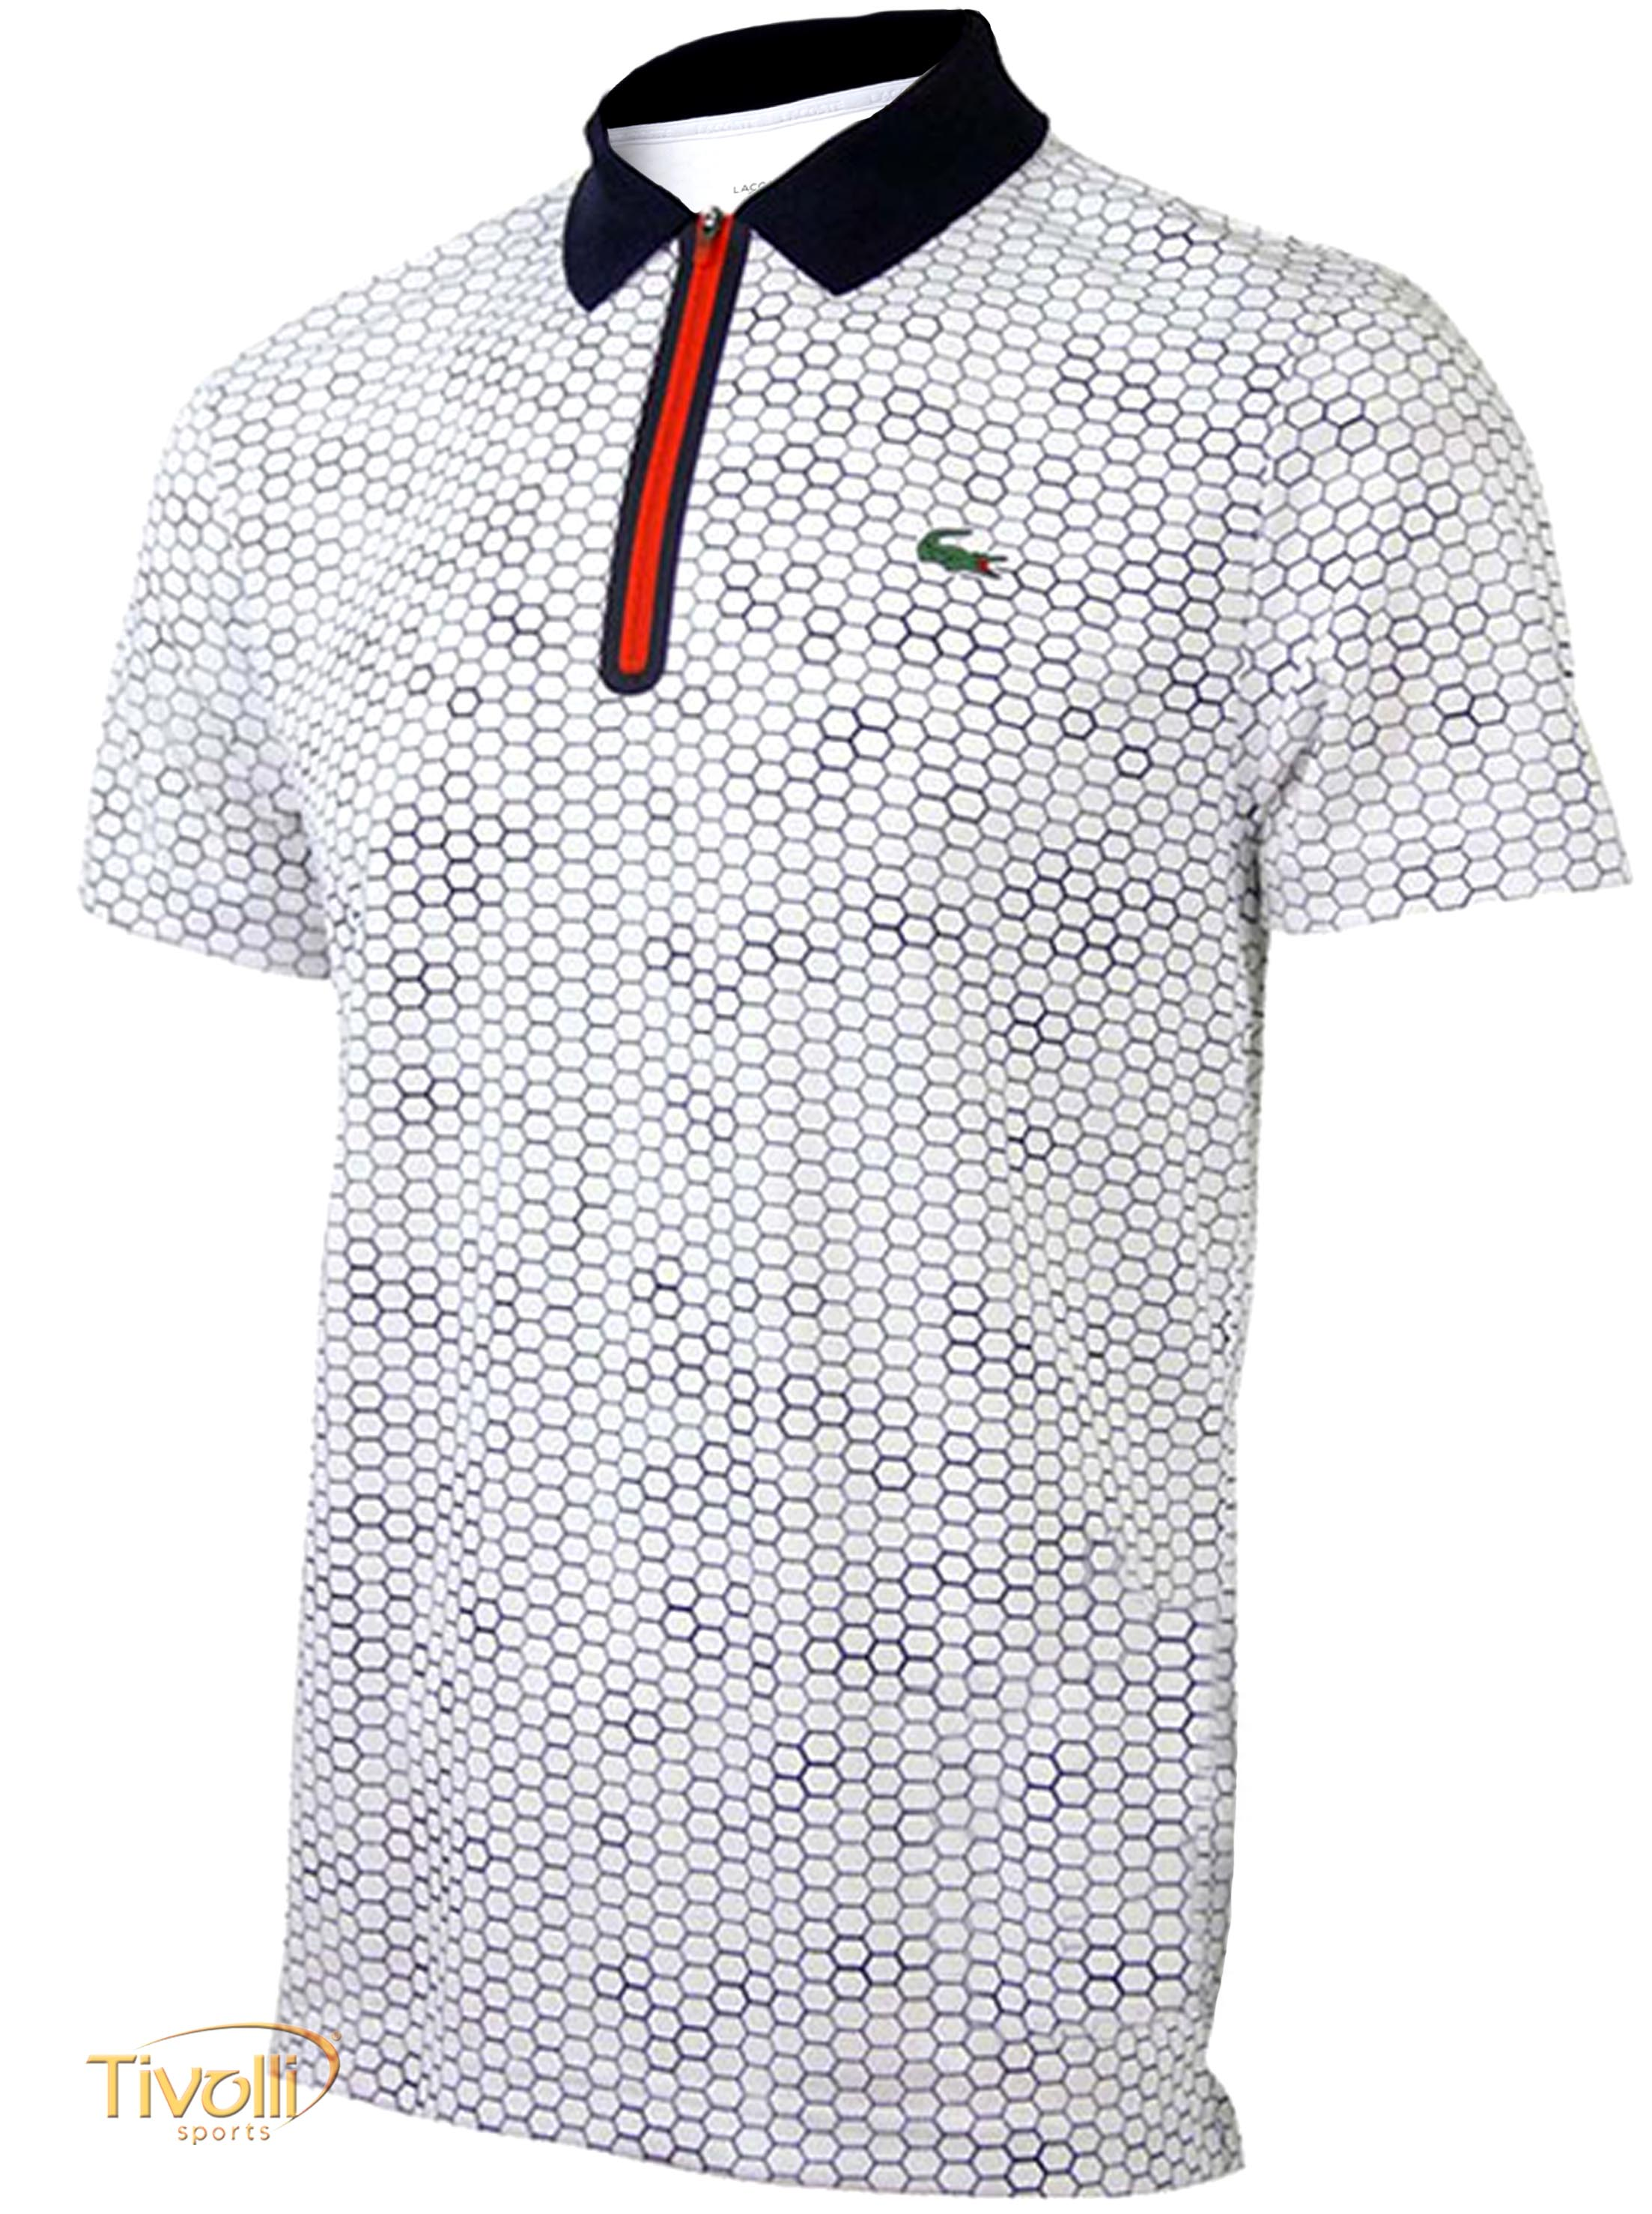 Camisa Polo Lacoste Ultra Dry Fancy 1 > Branca, Azul